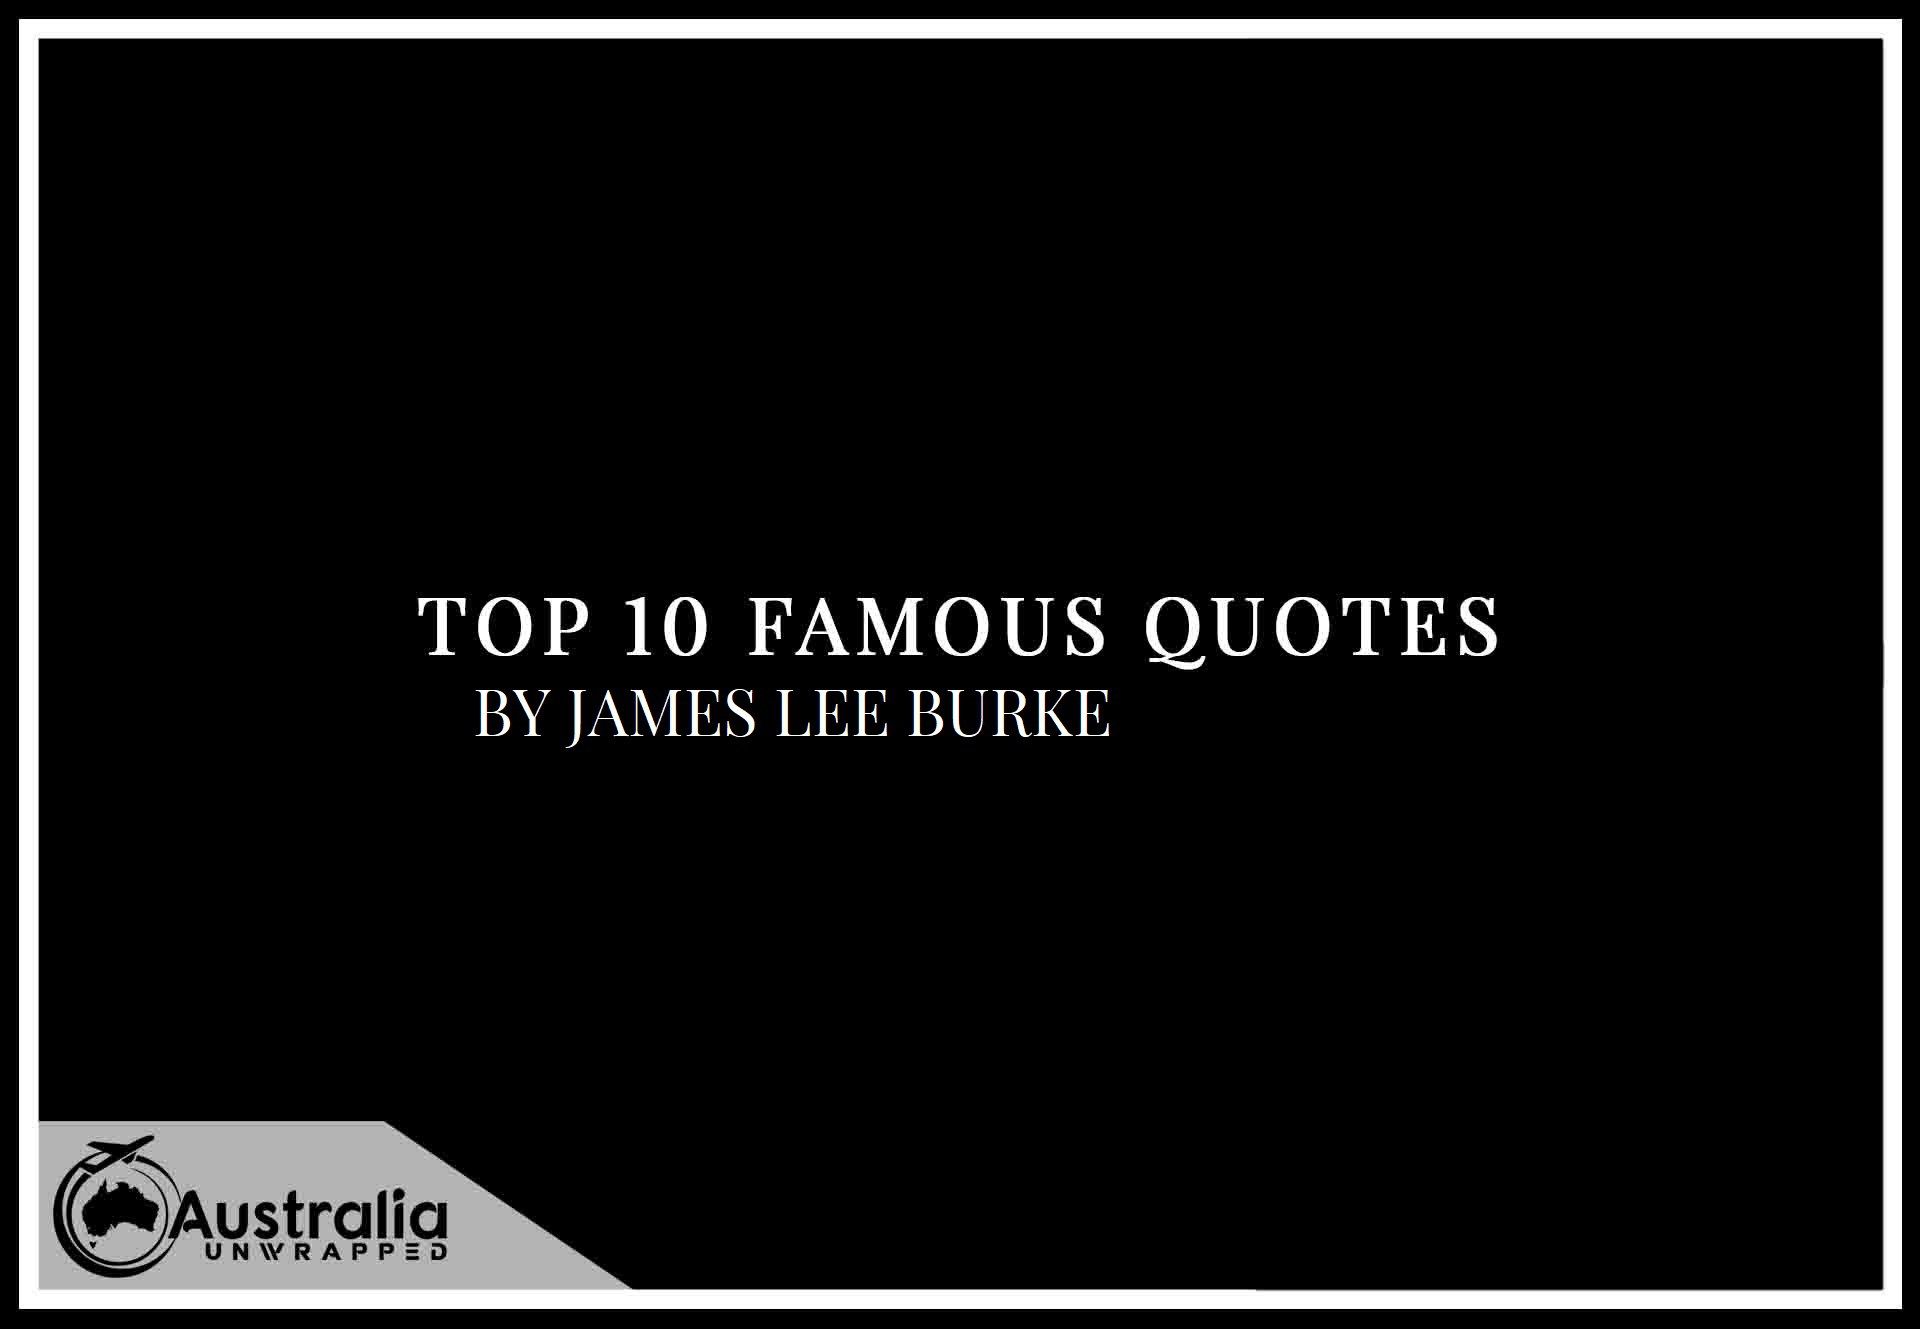 Top 10 Famous Quotes by Author James Lee Burke